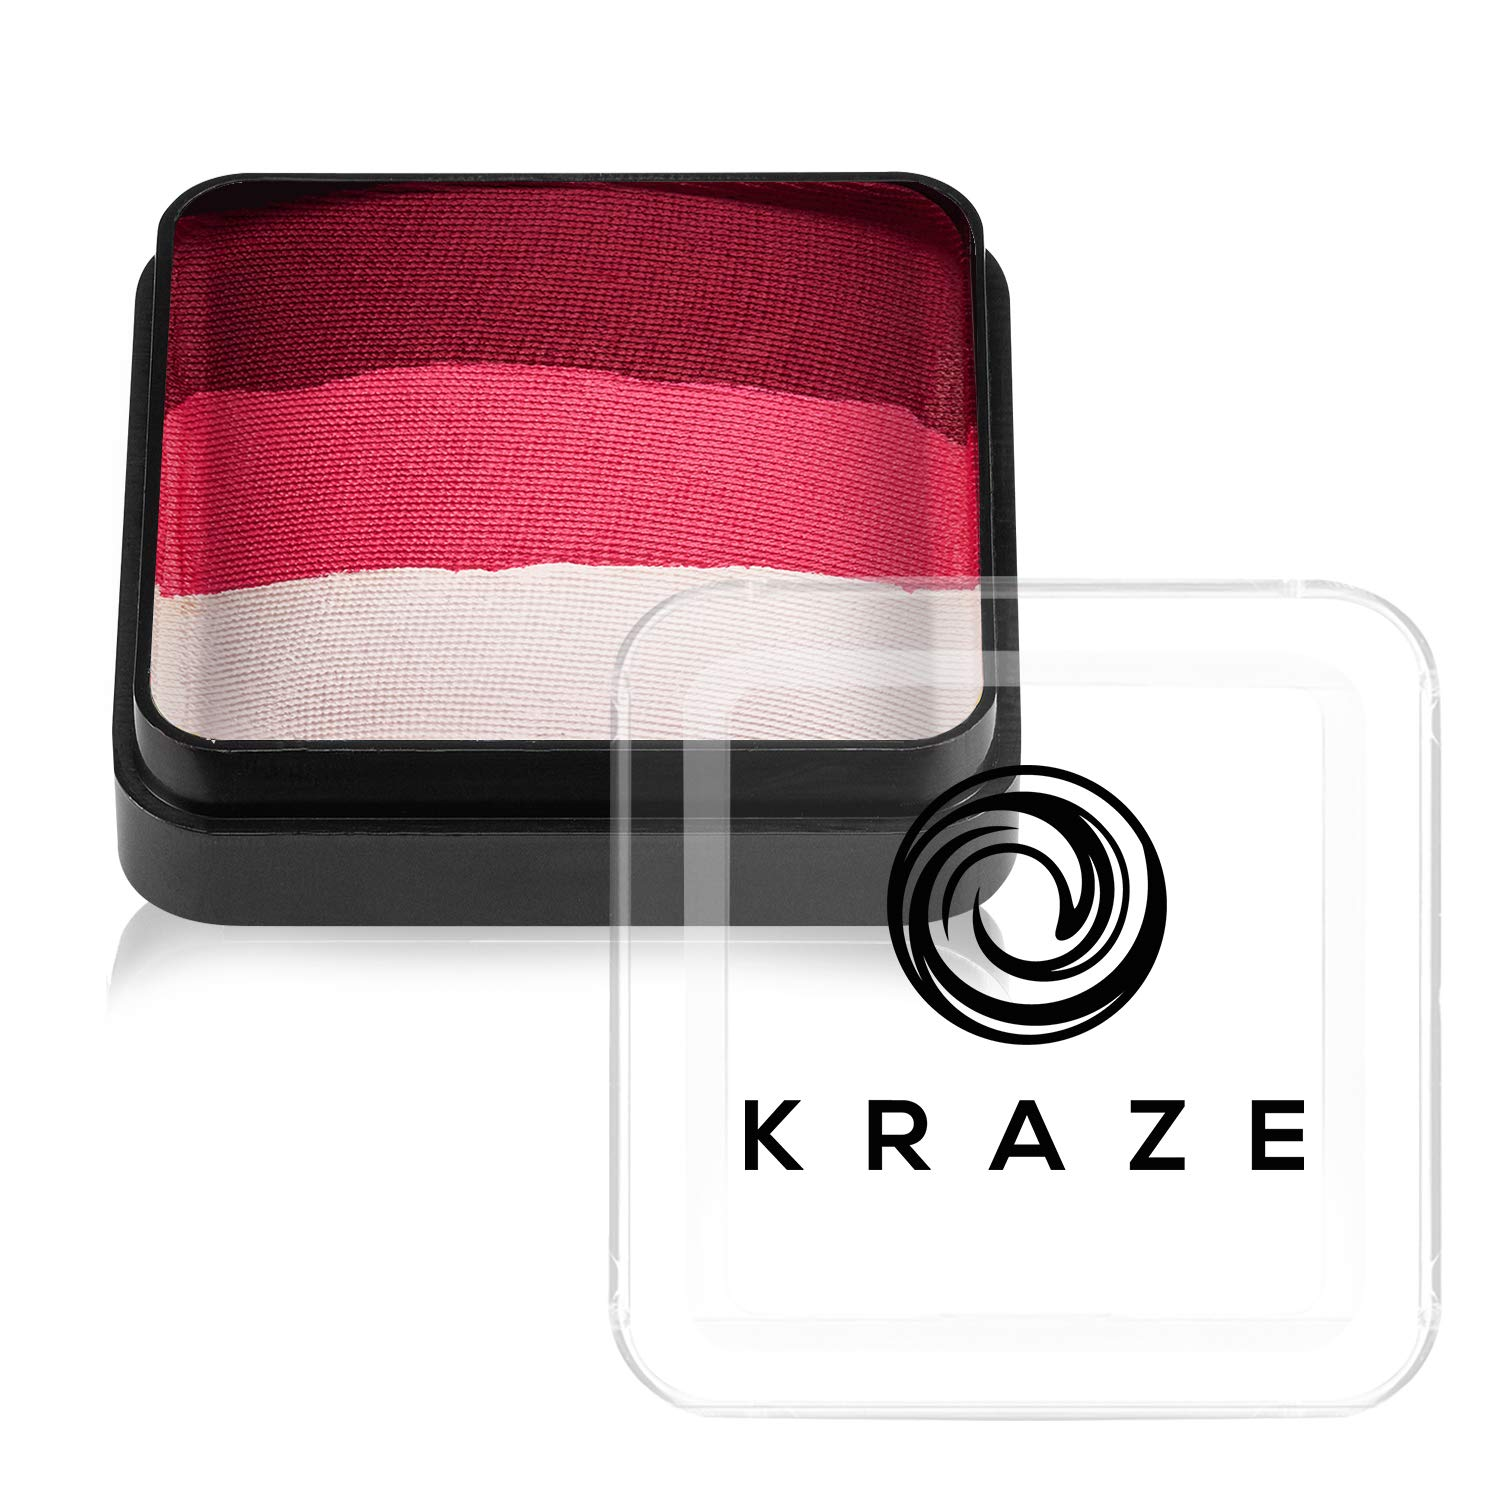 Kraze FX Dome Cake - Bloodberry (25 gm), Professional Face and Body Painting Split Cake, Hypoallergenic, Safe & Non-Toxic, Child Friendly, Ideal for Fairs, Carnivals, Party & Halloween